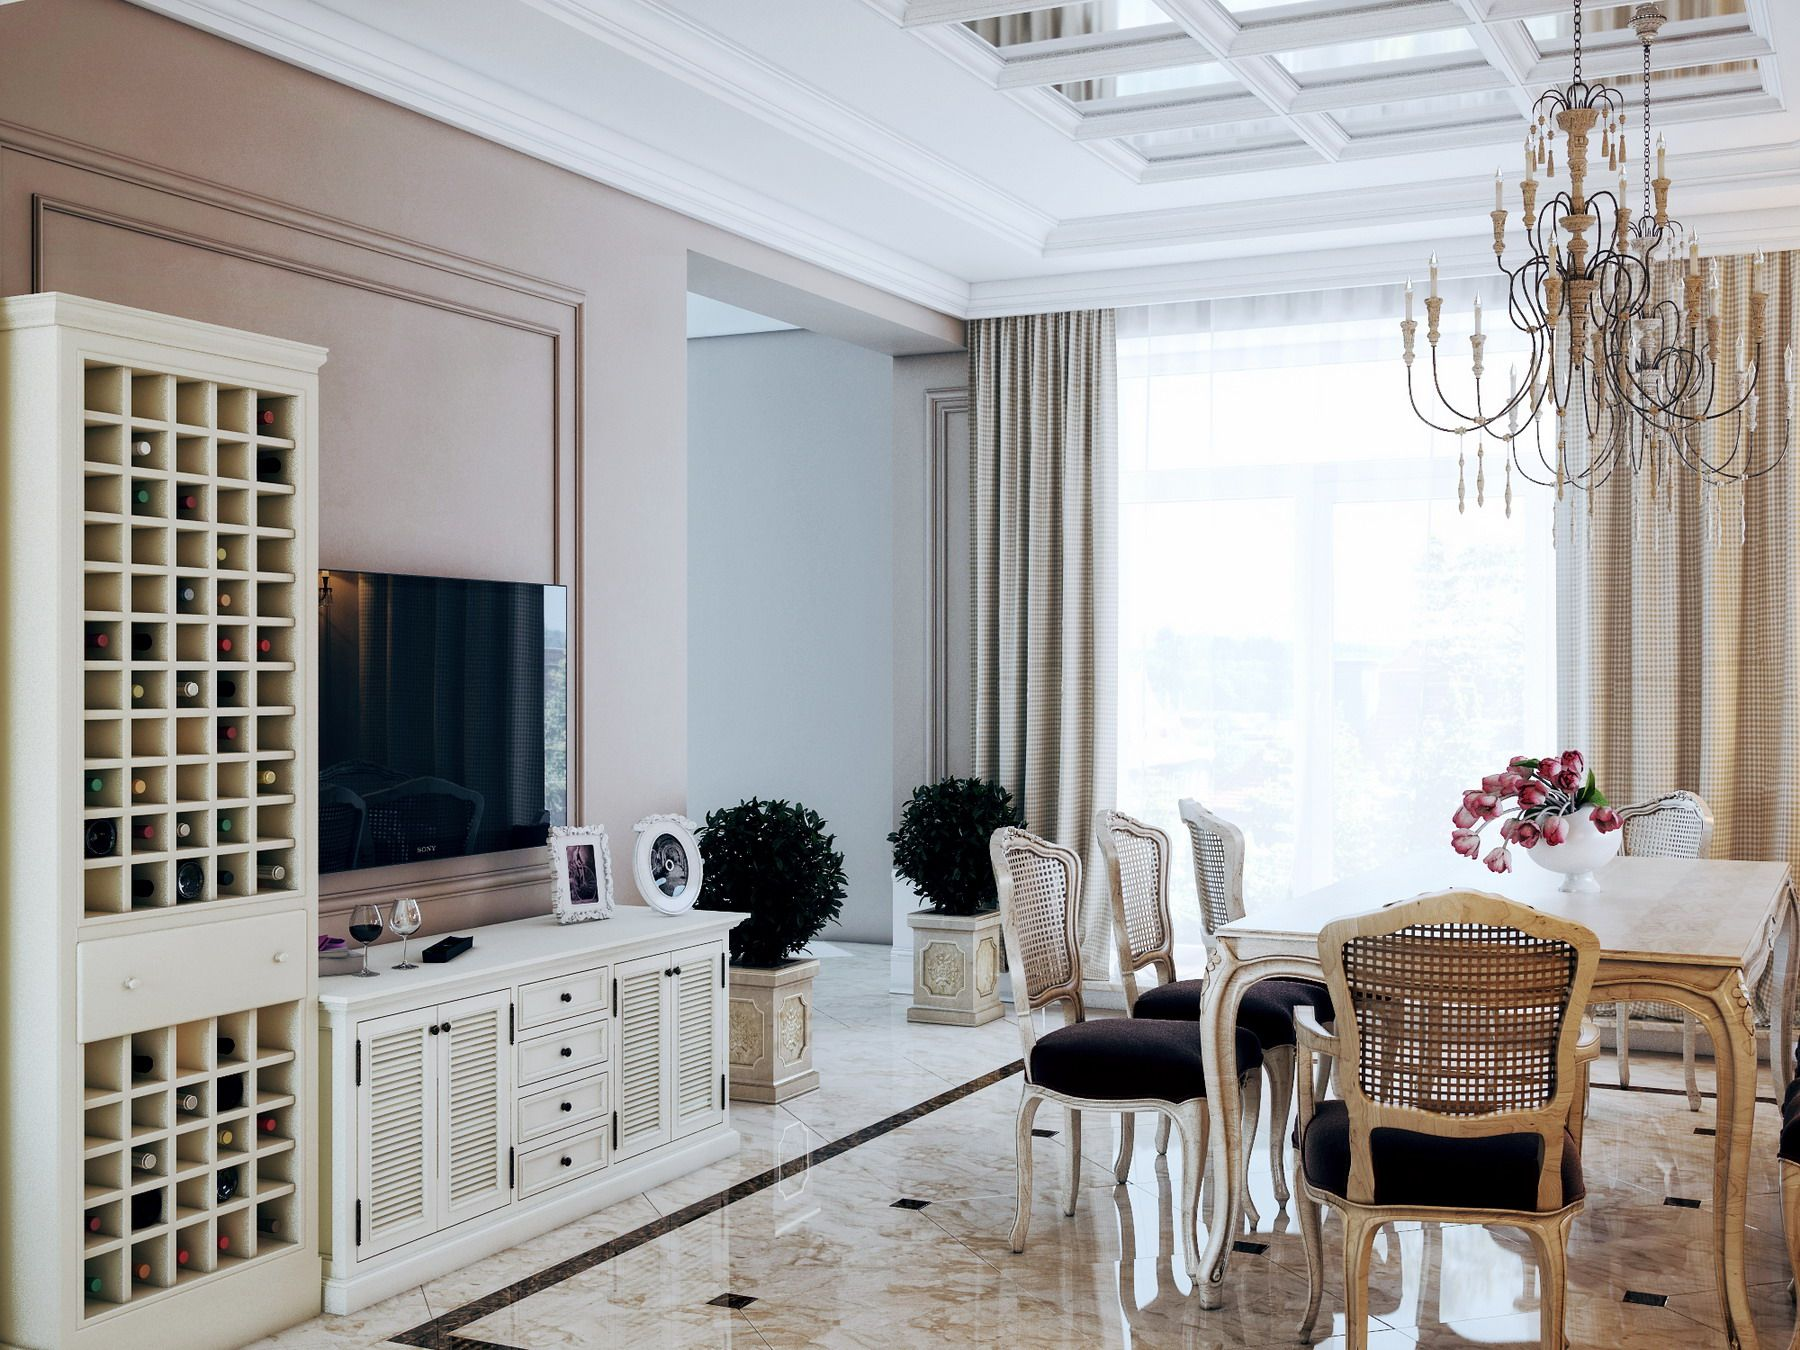 Calm Interior Of The Dining Room With Elements Different European Design Styles Looks Fresh And